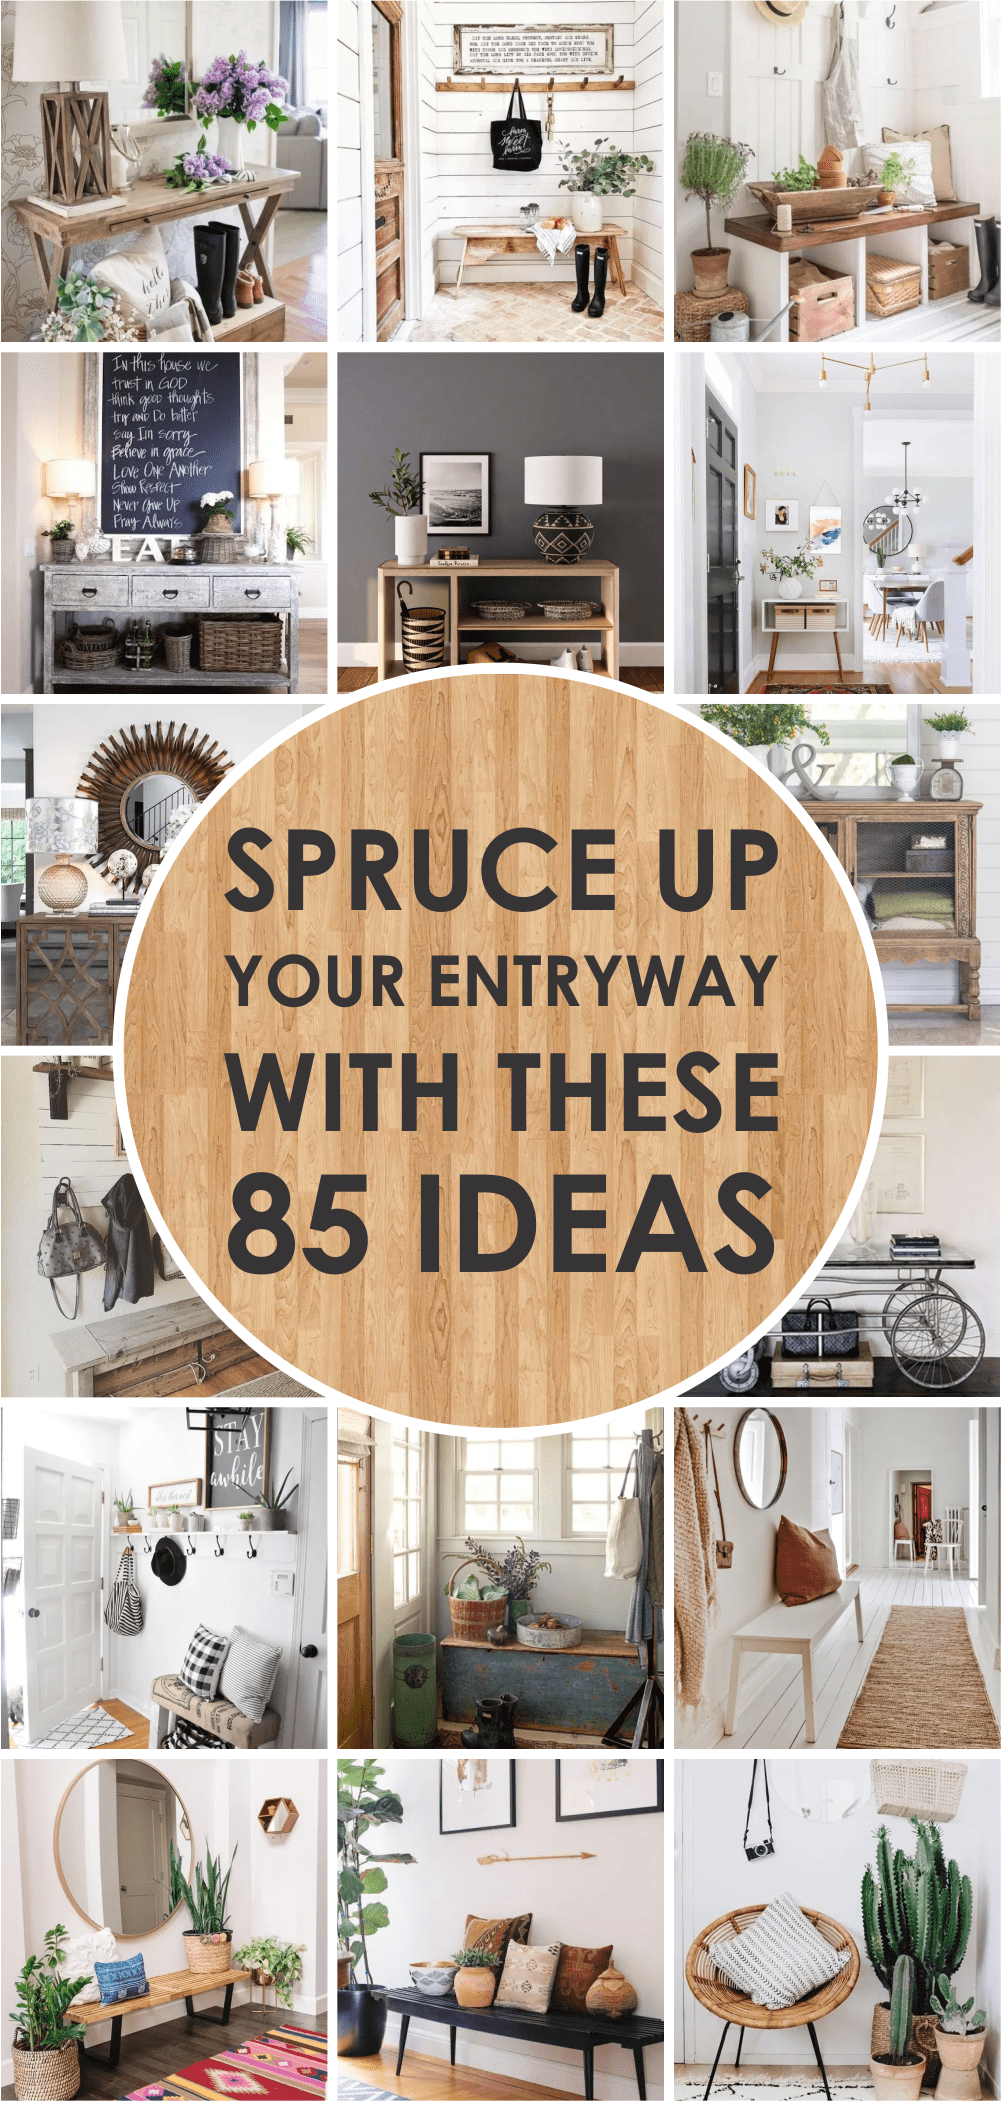 Spruce-up-your-entryway-with-these-85-ideas-1